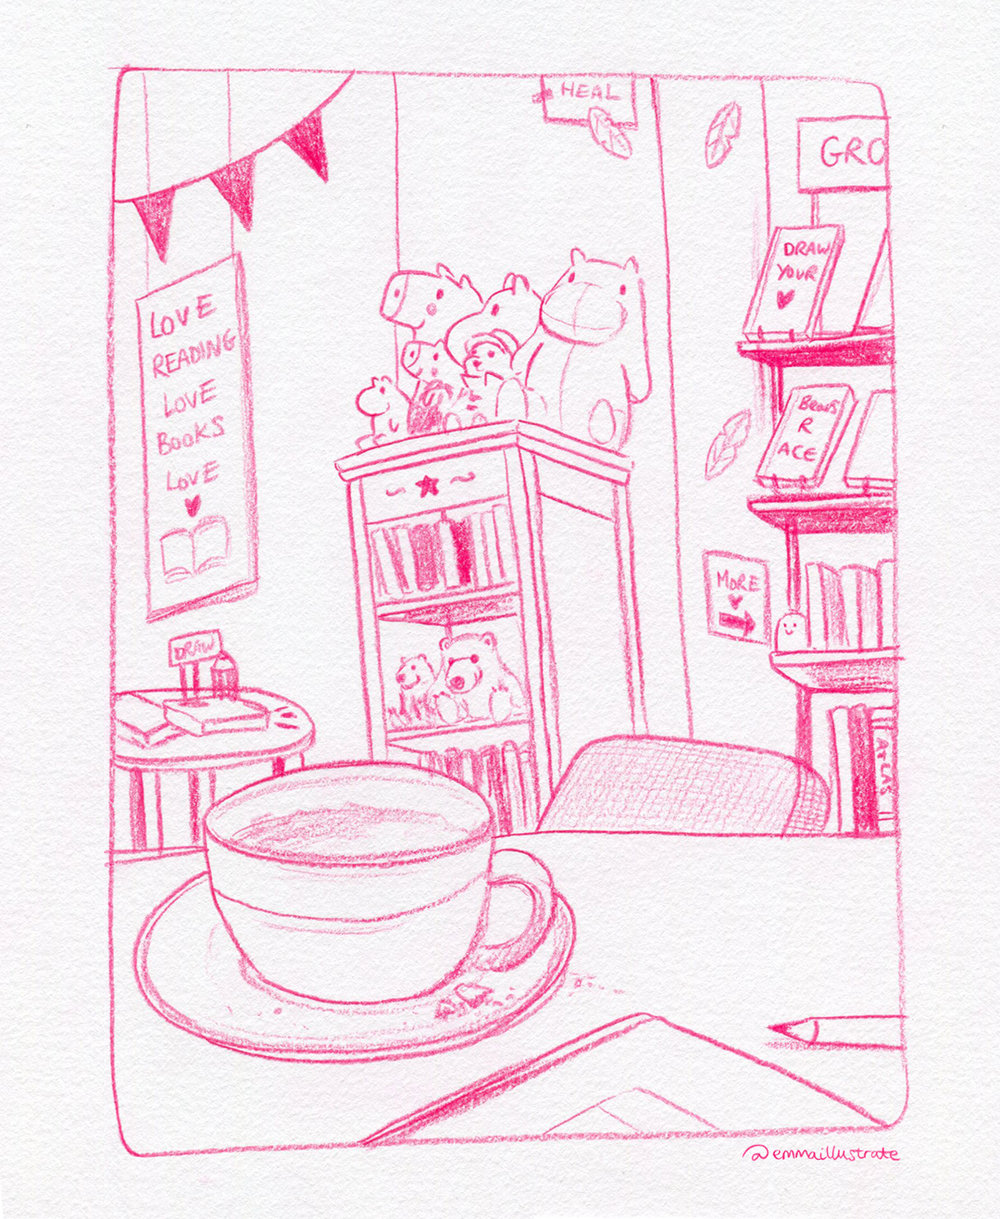 Bookshop_Sketchbook_Emma_Reynolds.jpg